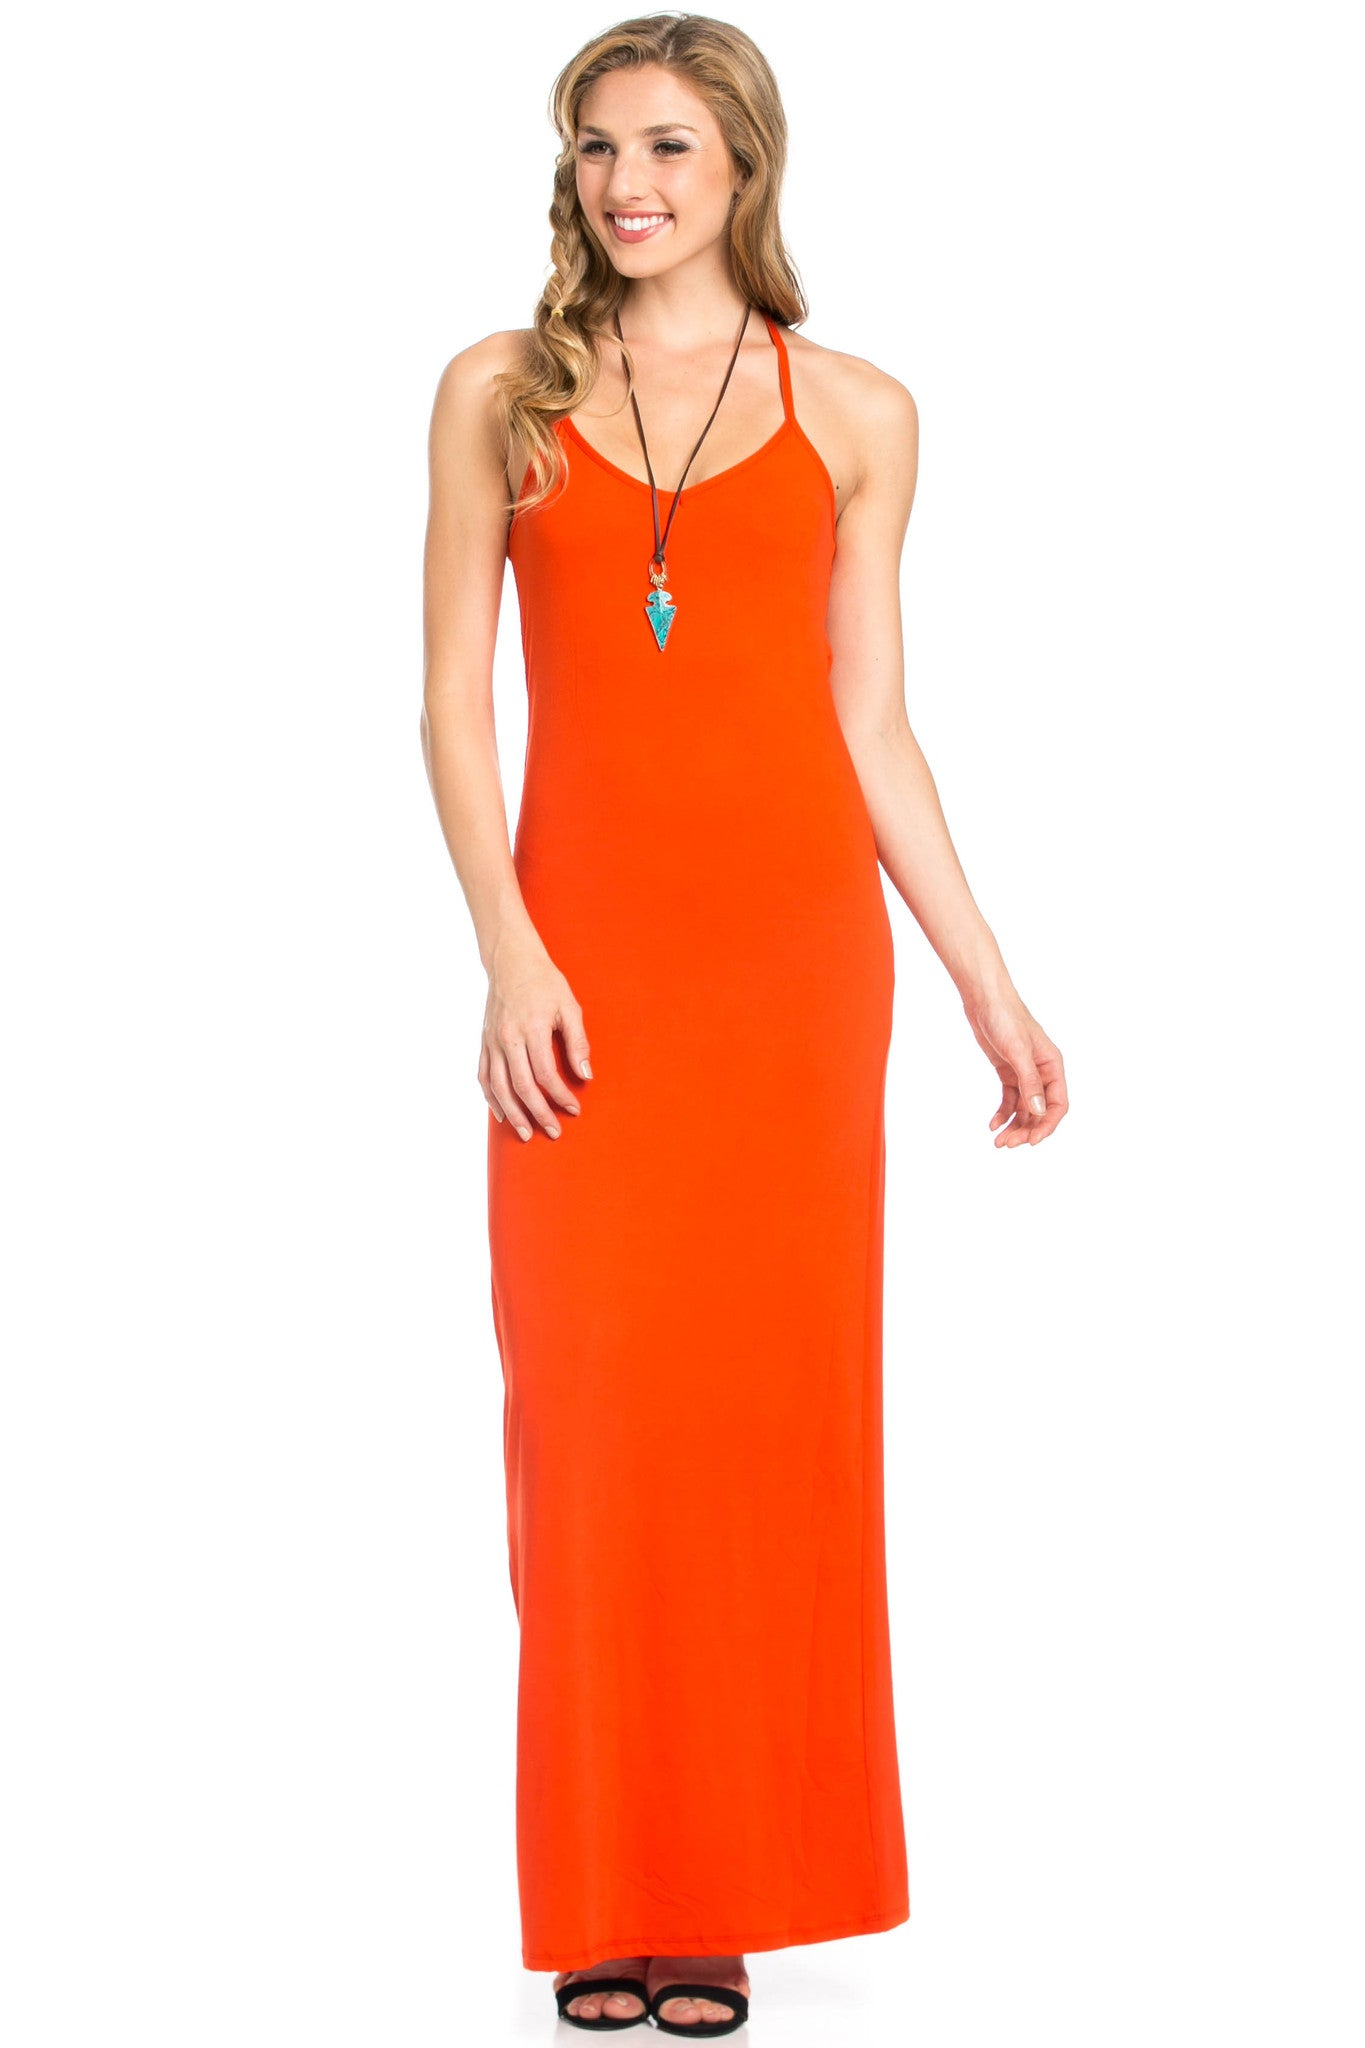 Micro Suede Tomato Maxi Dress - Dresses - My Yuccie - 4